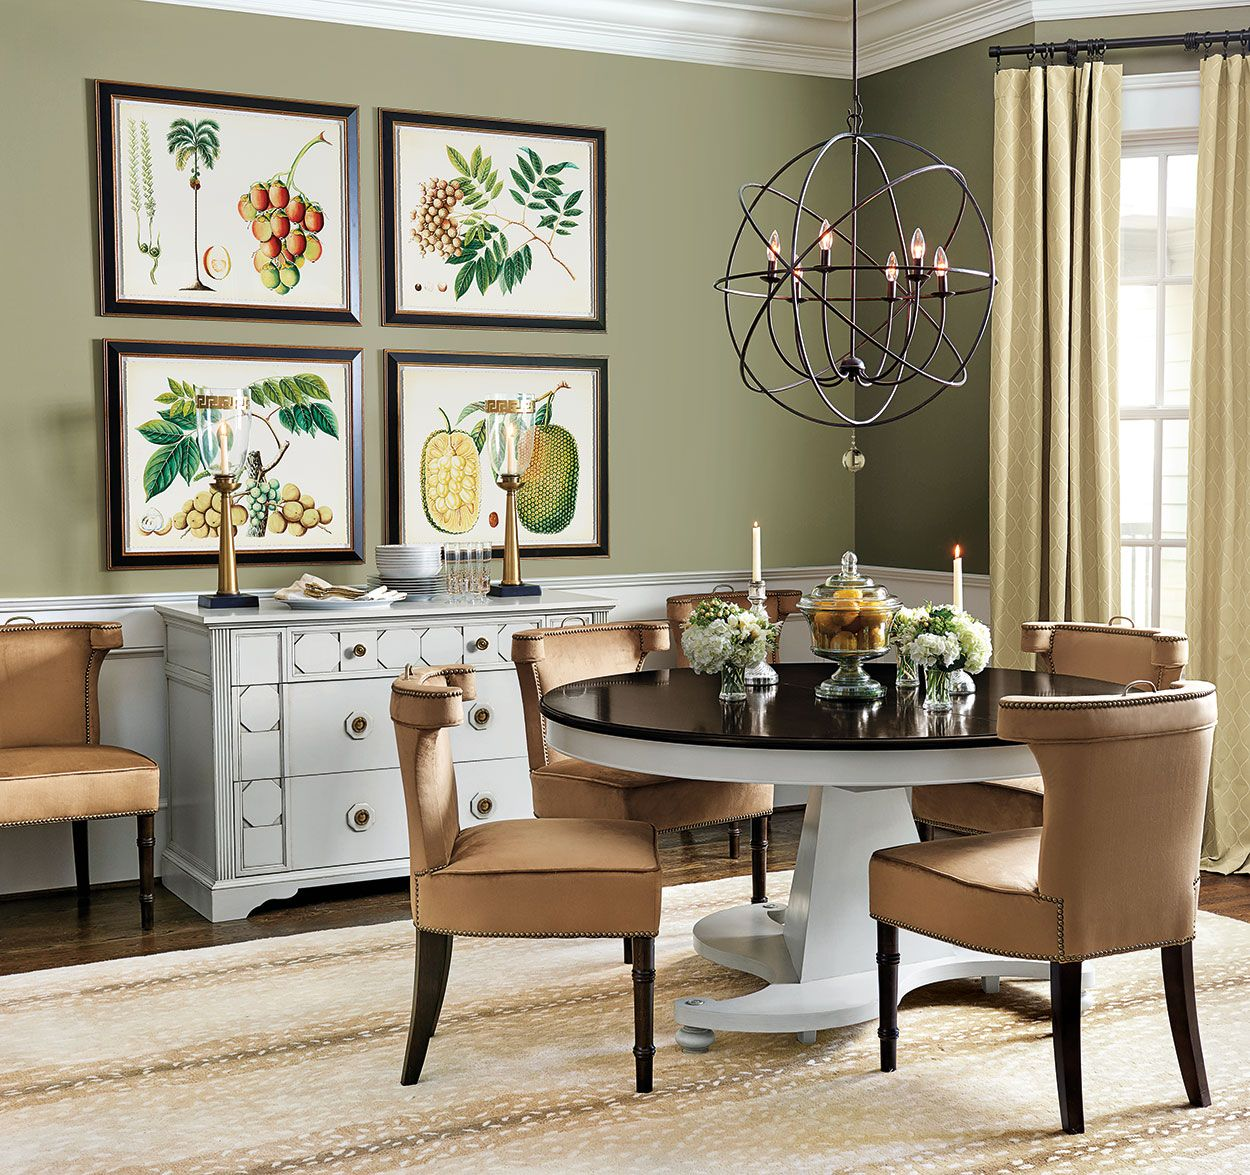 Dining Room Decorating Ideas With Images Green Dining Room